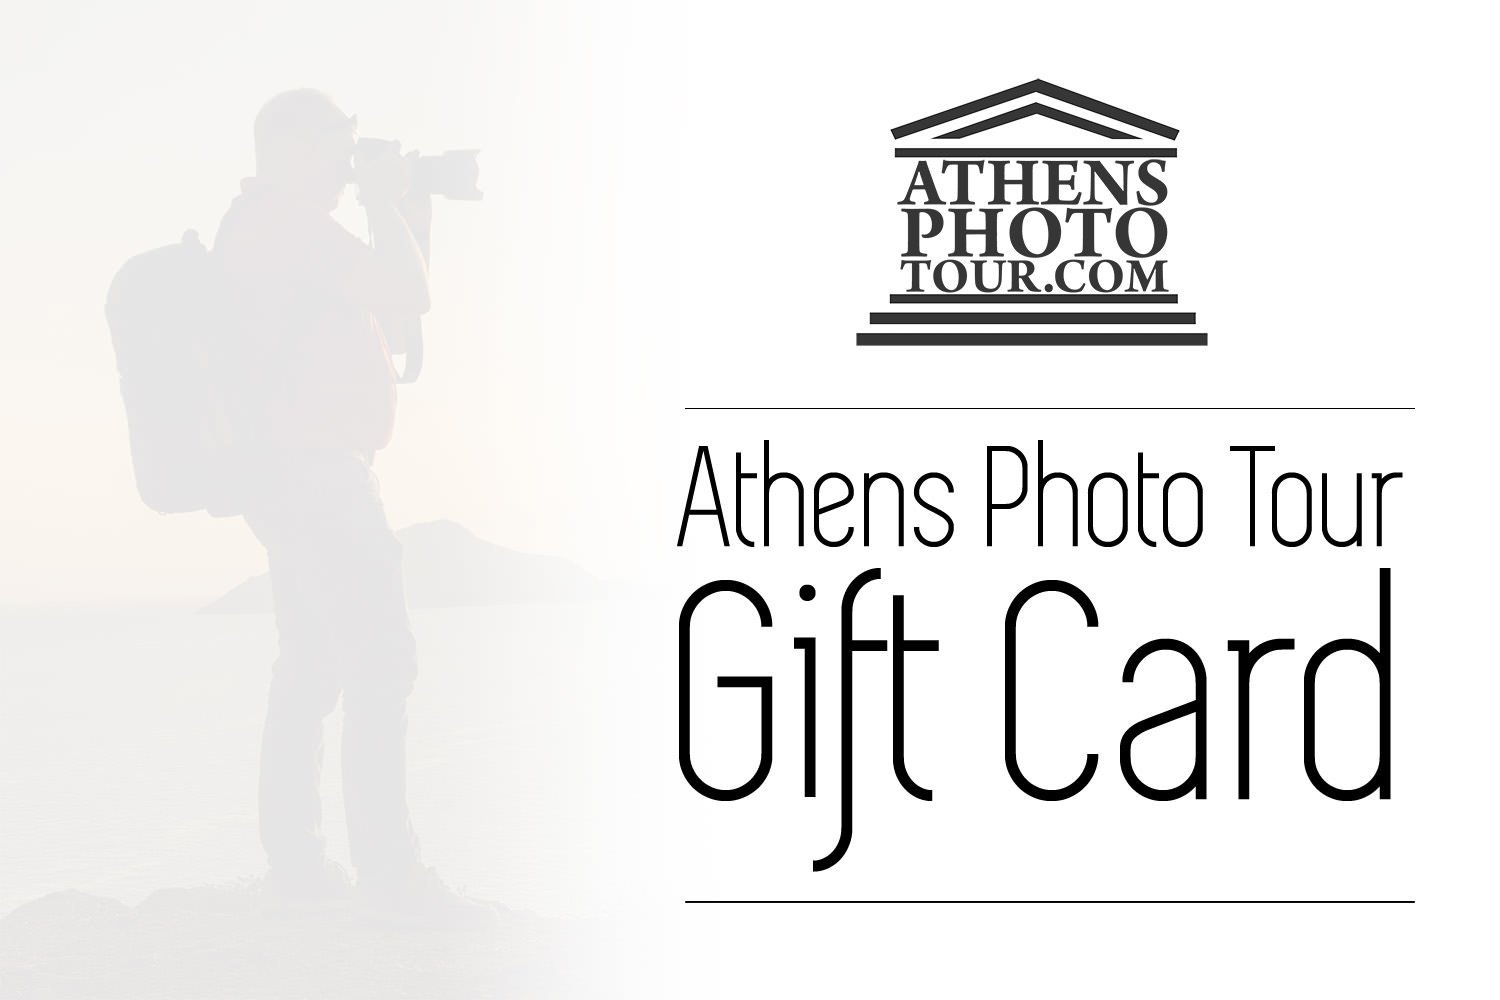 Athens Photo Tour - Gift cards